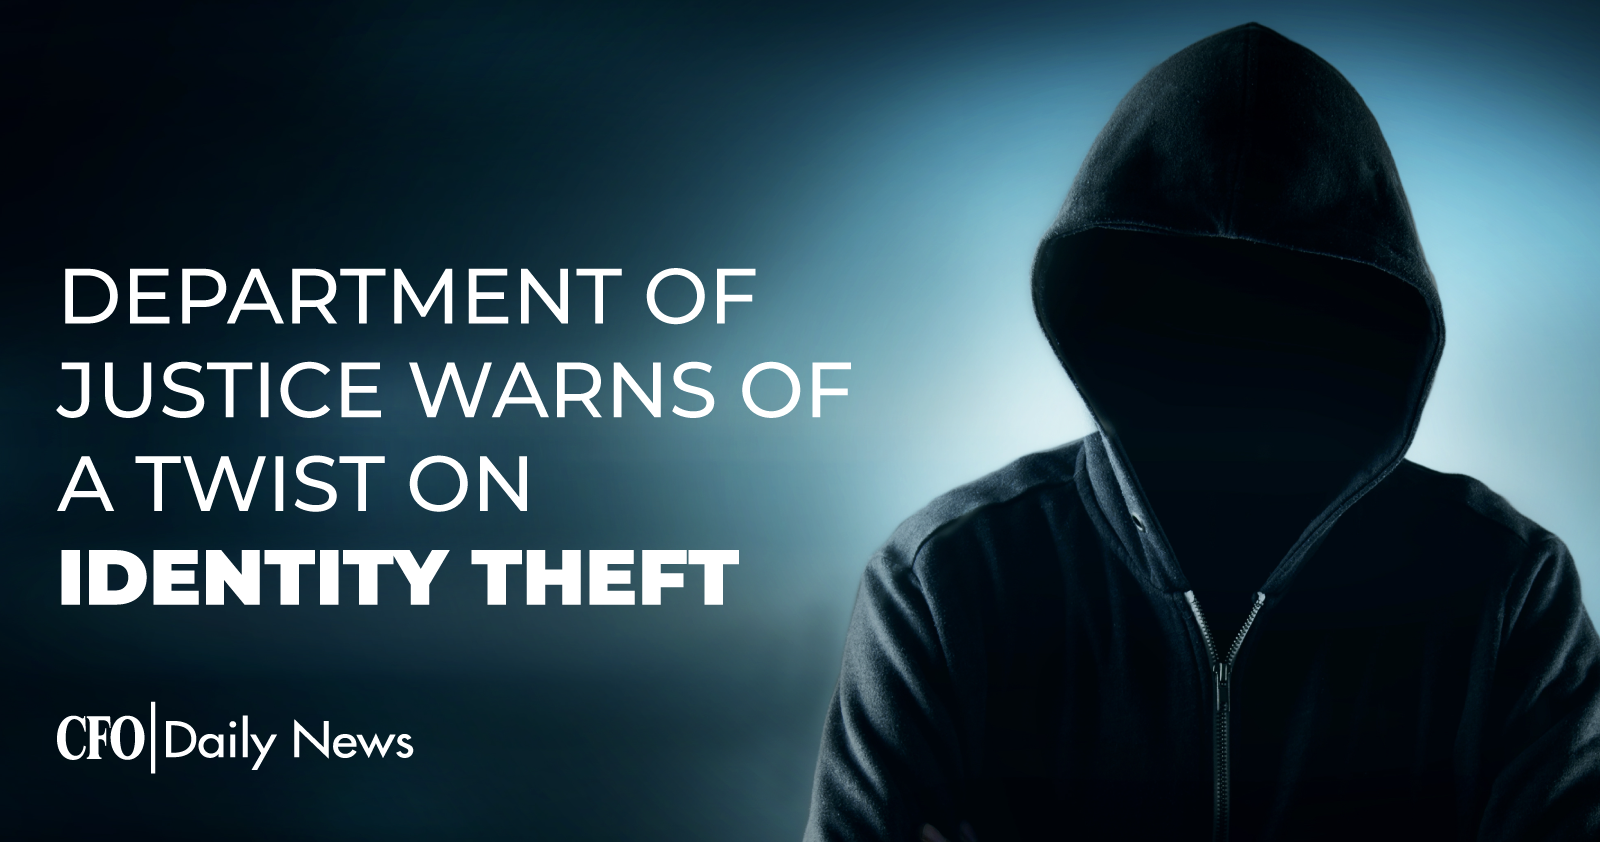 department of justice warns of a twist on identity theft